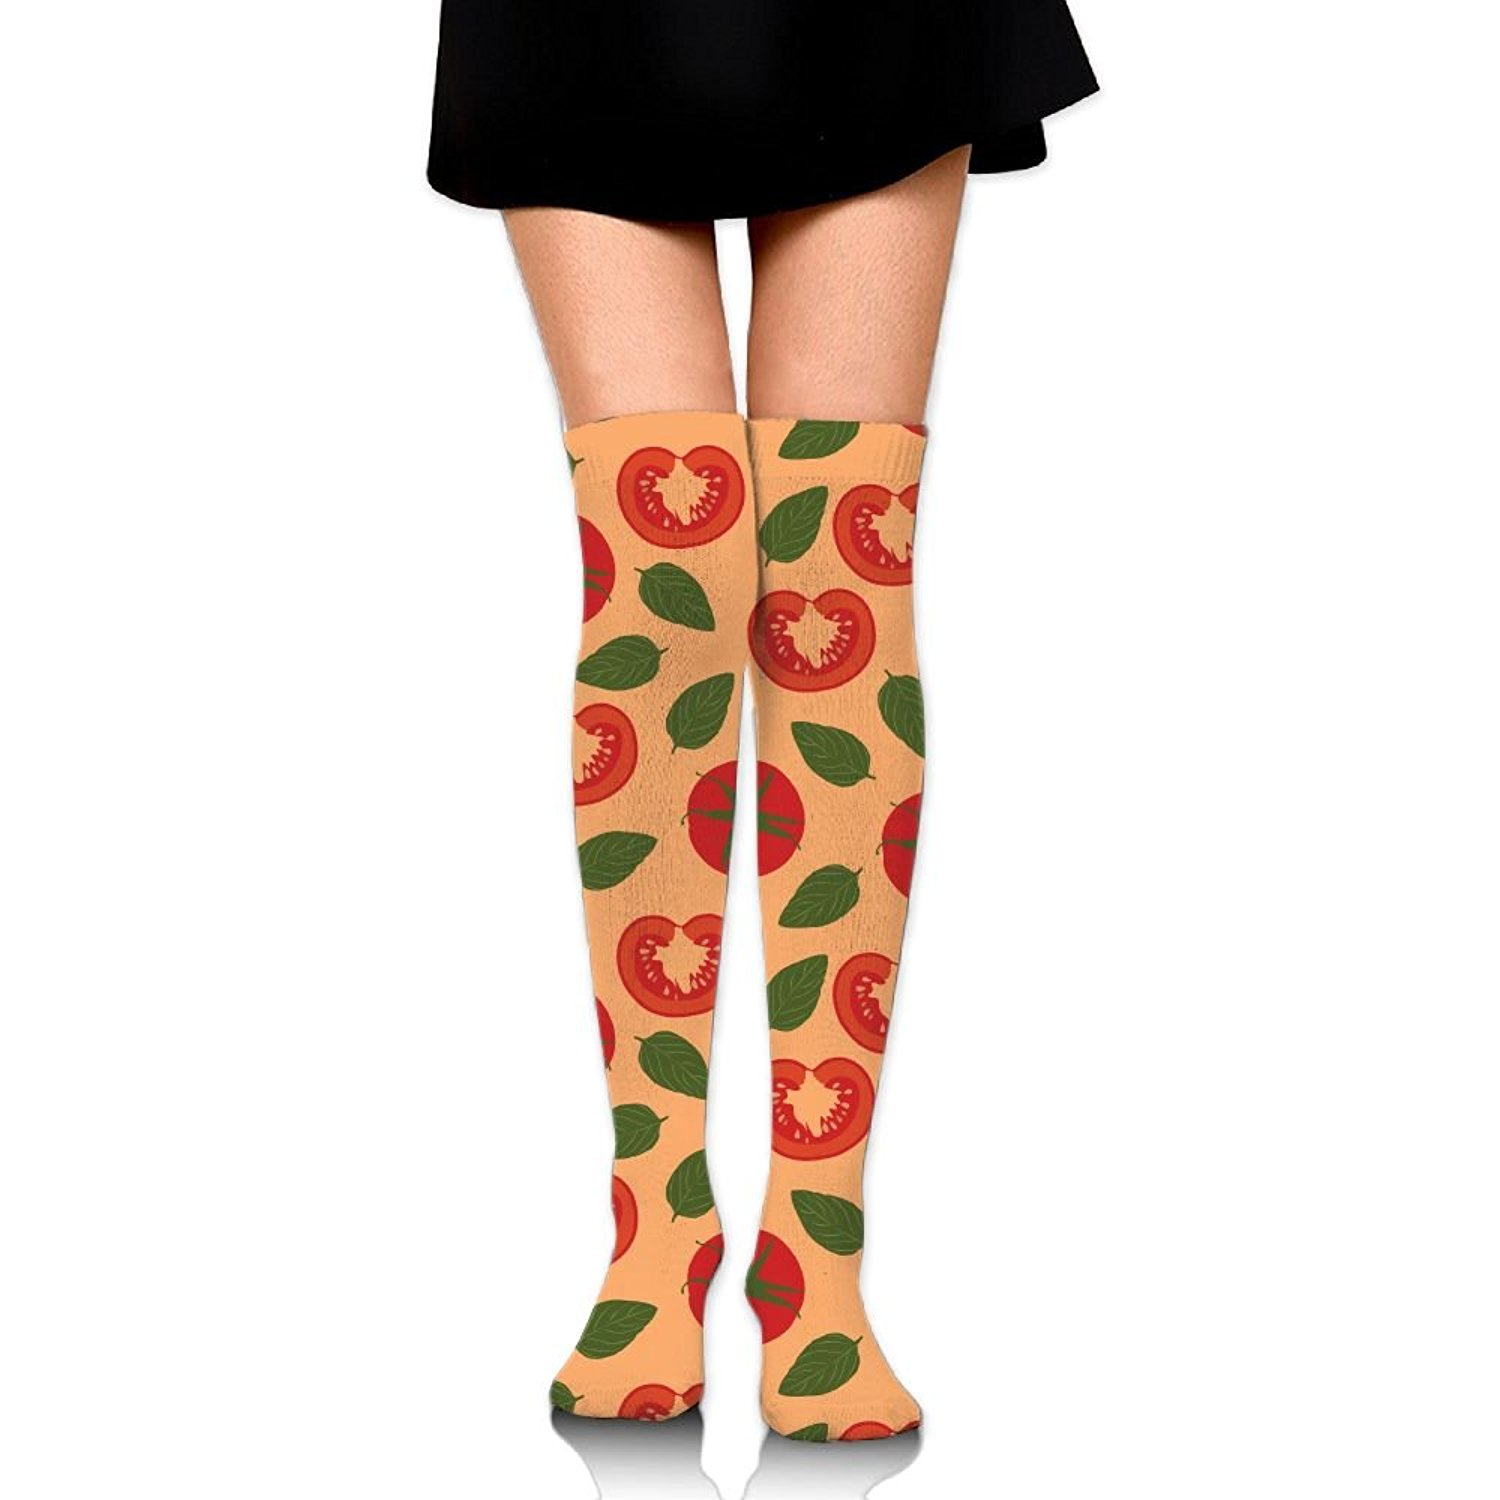 Zaqxsw Tomatoes Women Cool Thigh High Socks Thermal Socks For Teen Girls